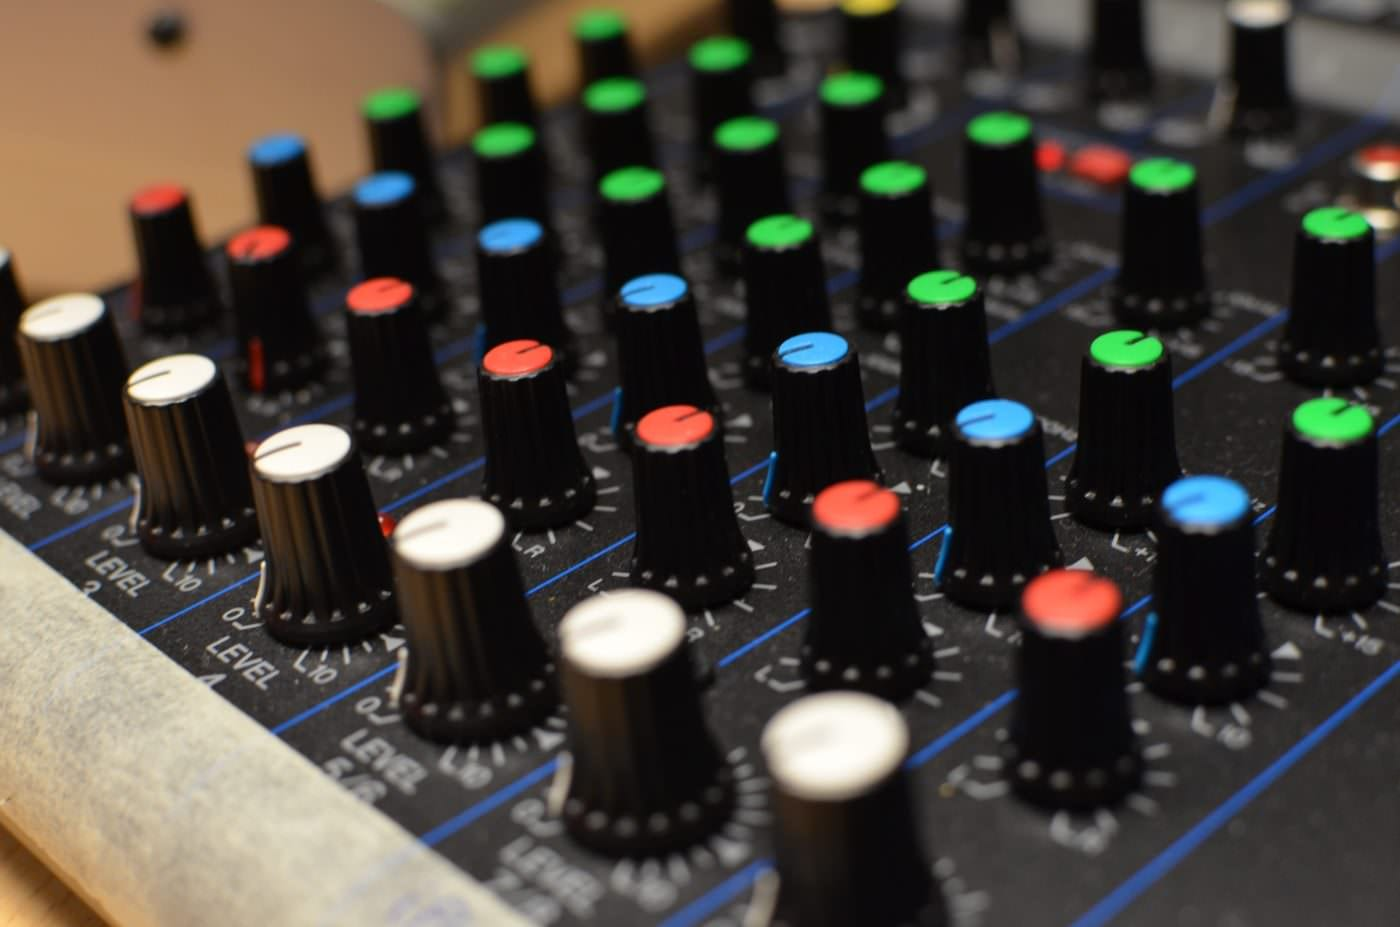 Yamaha Mg10 Mixer A Podcasting Review Circuit Reviews Online Shopping On Dual Integrated